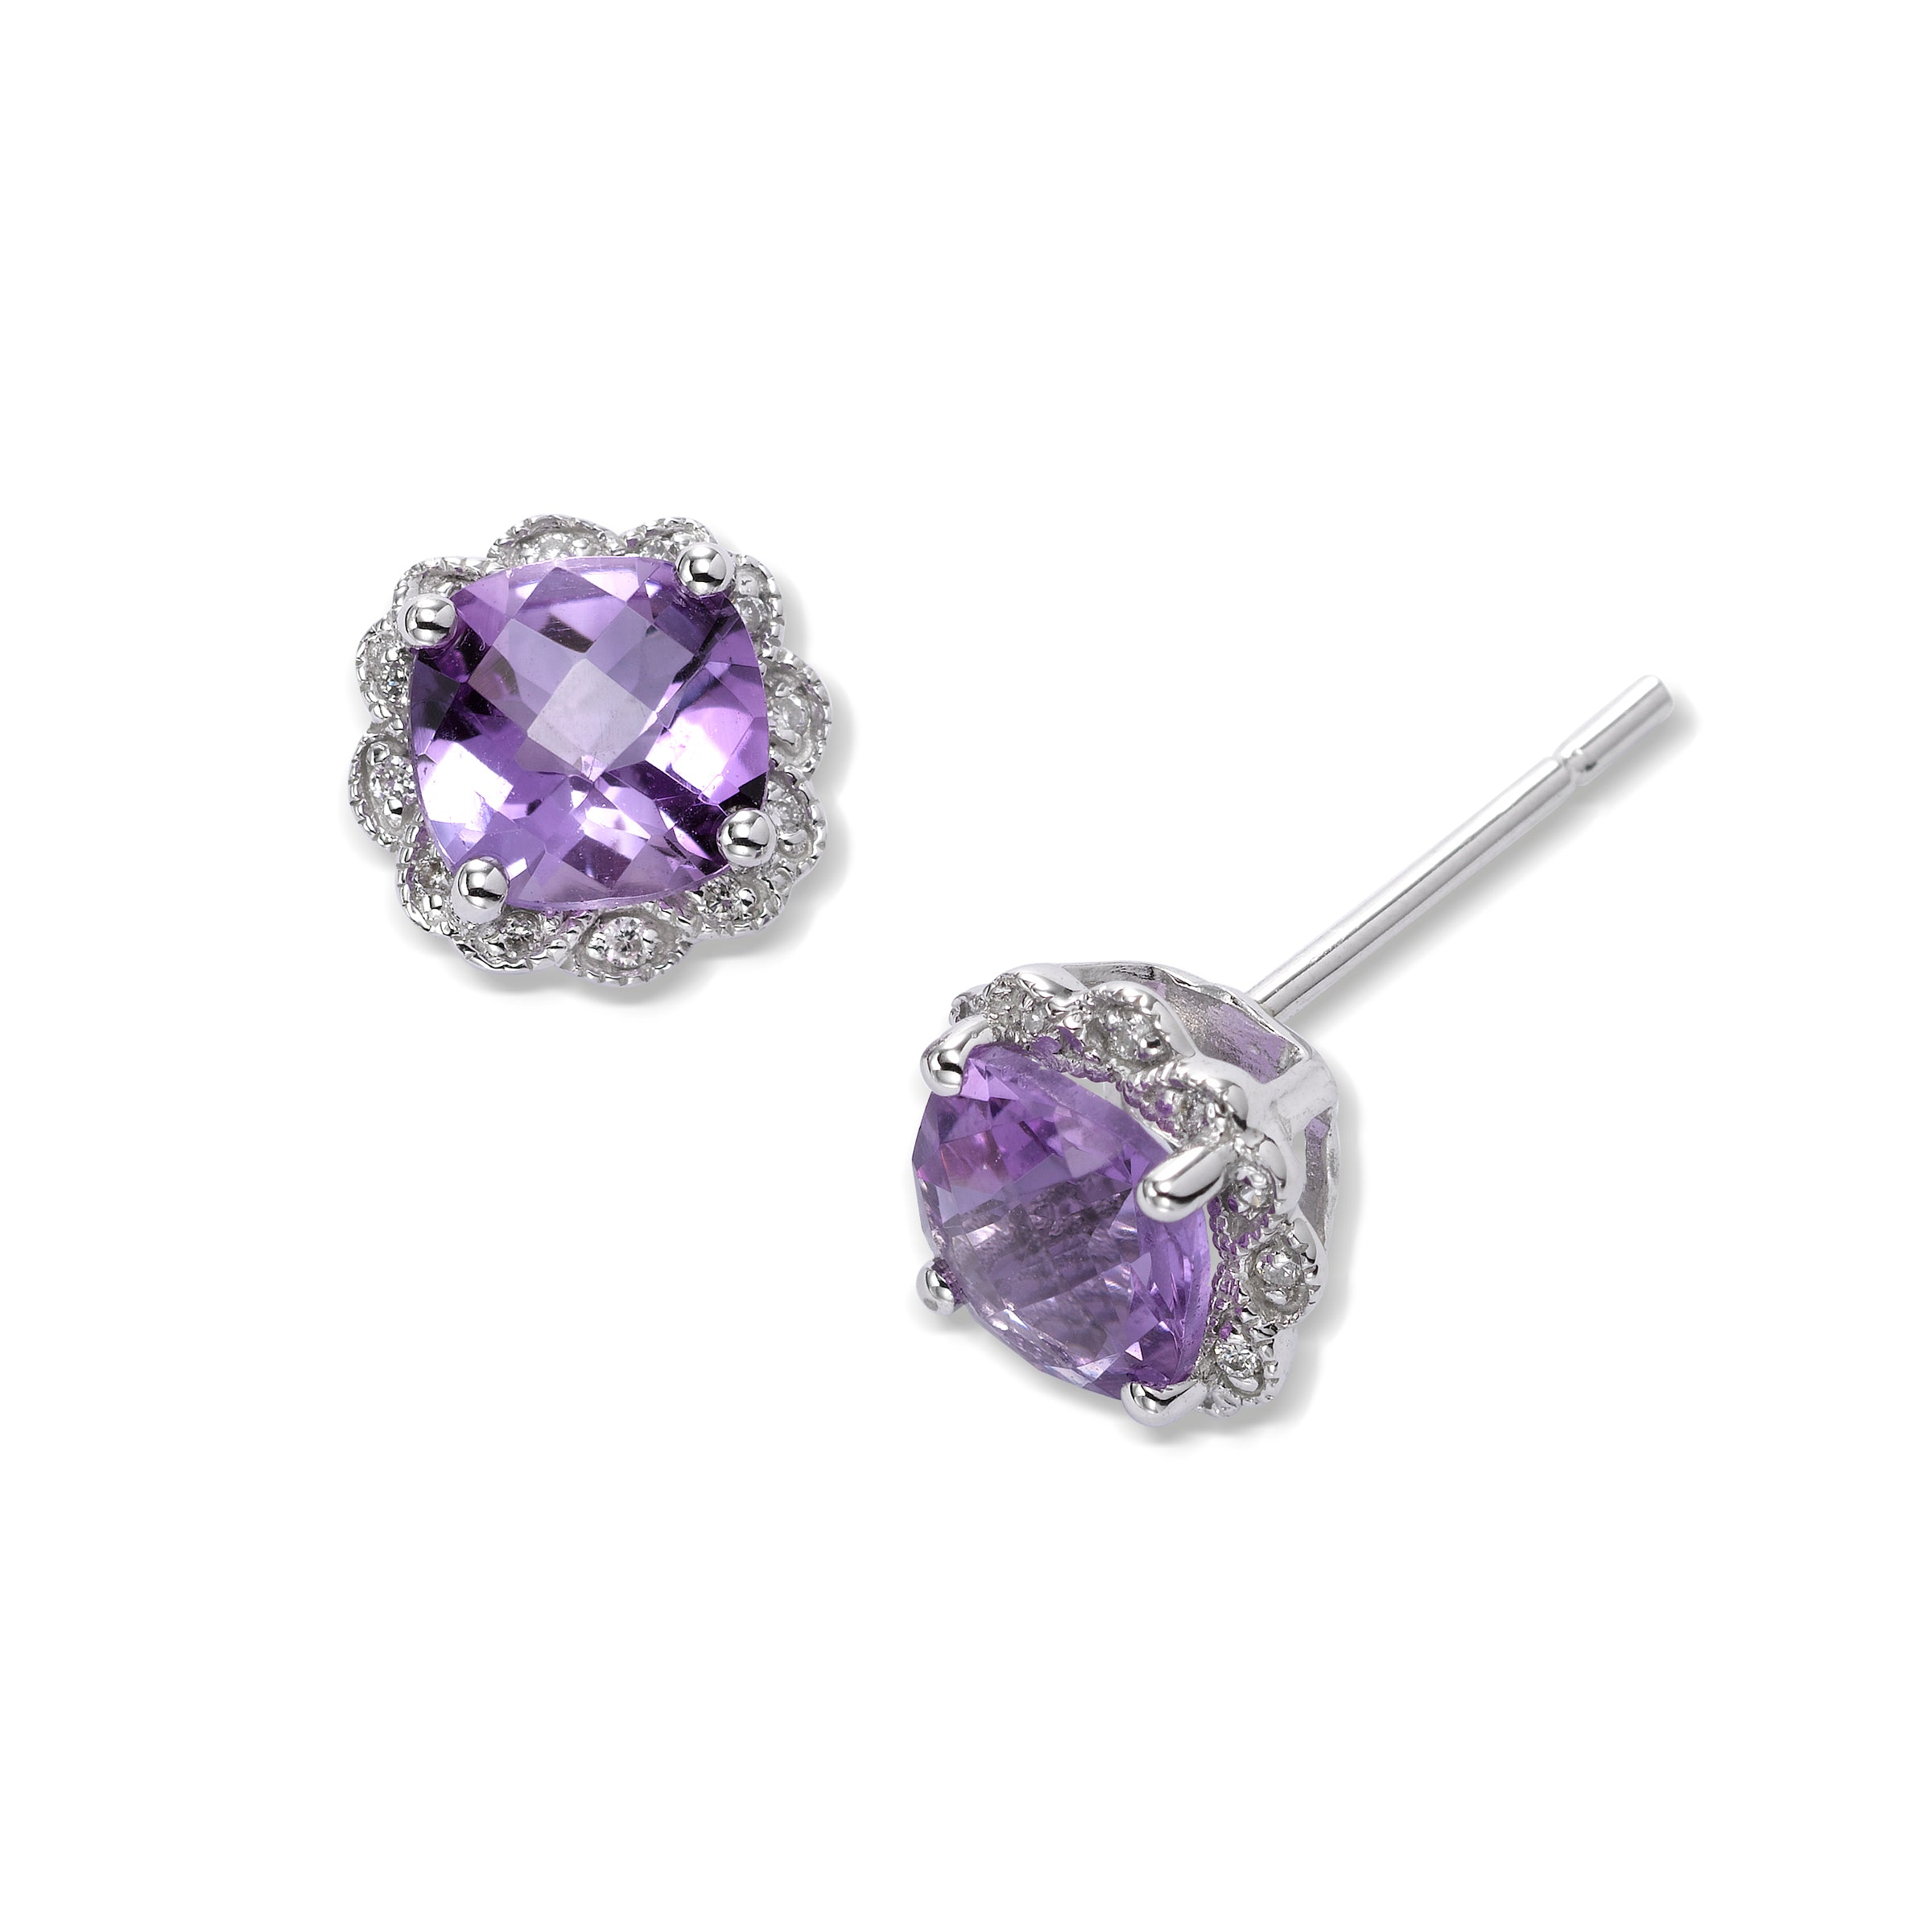 Faceted Amethyst and Diamond Earrings, 14K White Gold